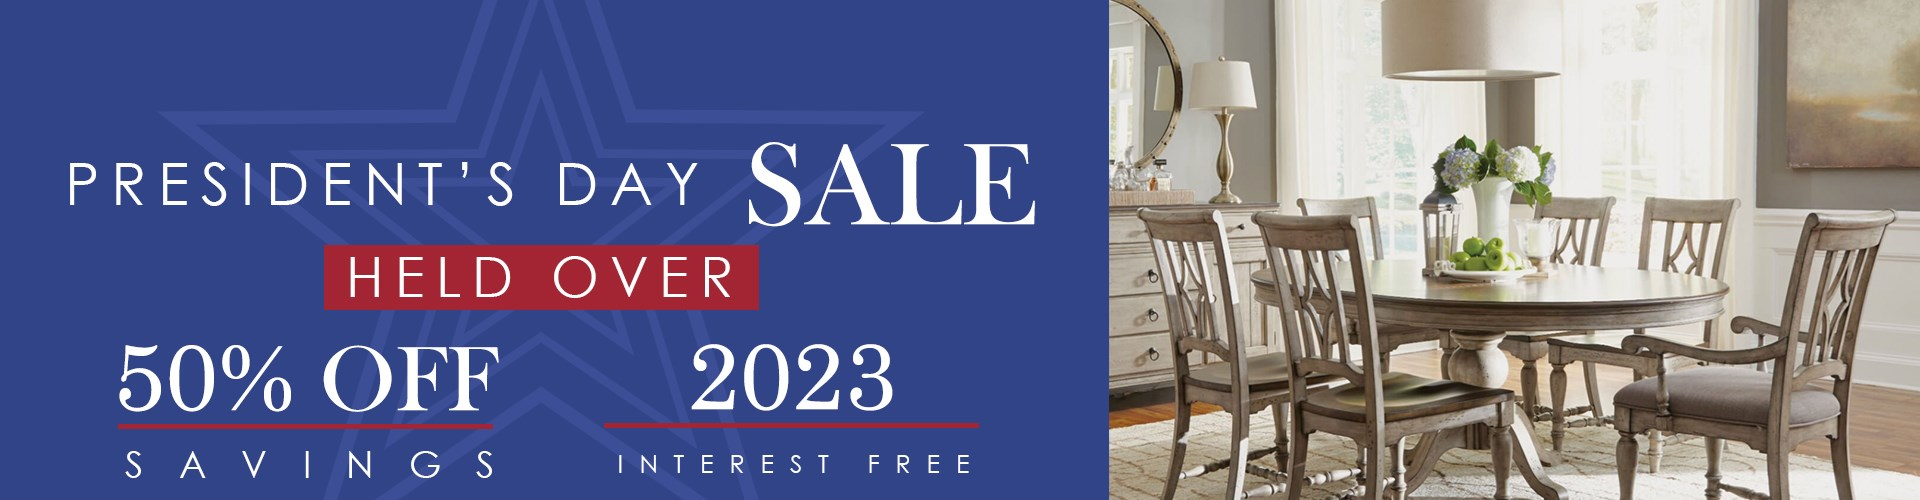 President's Day Sale Extended. Limited time event with Hudson's Furniture.